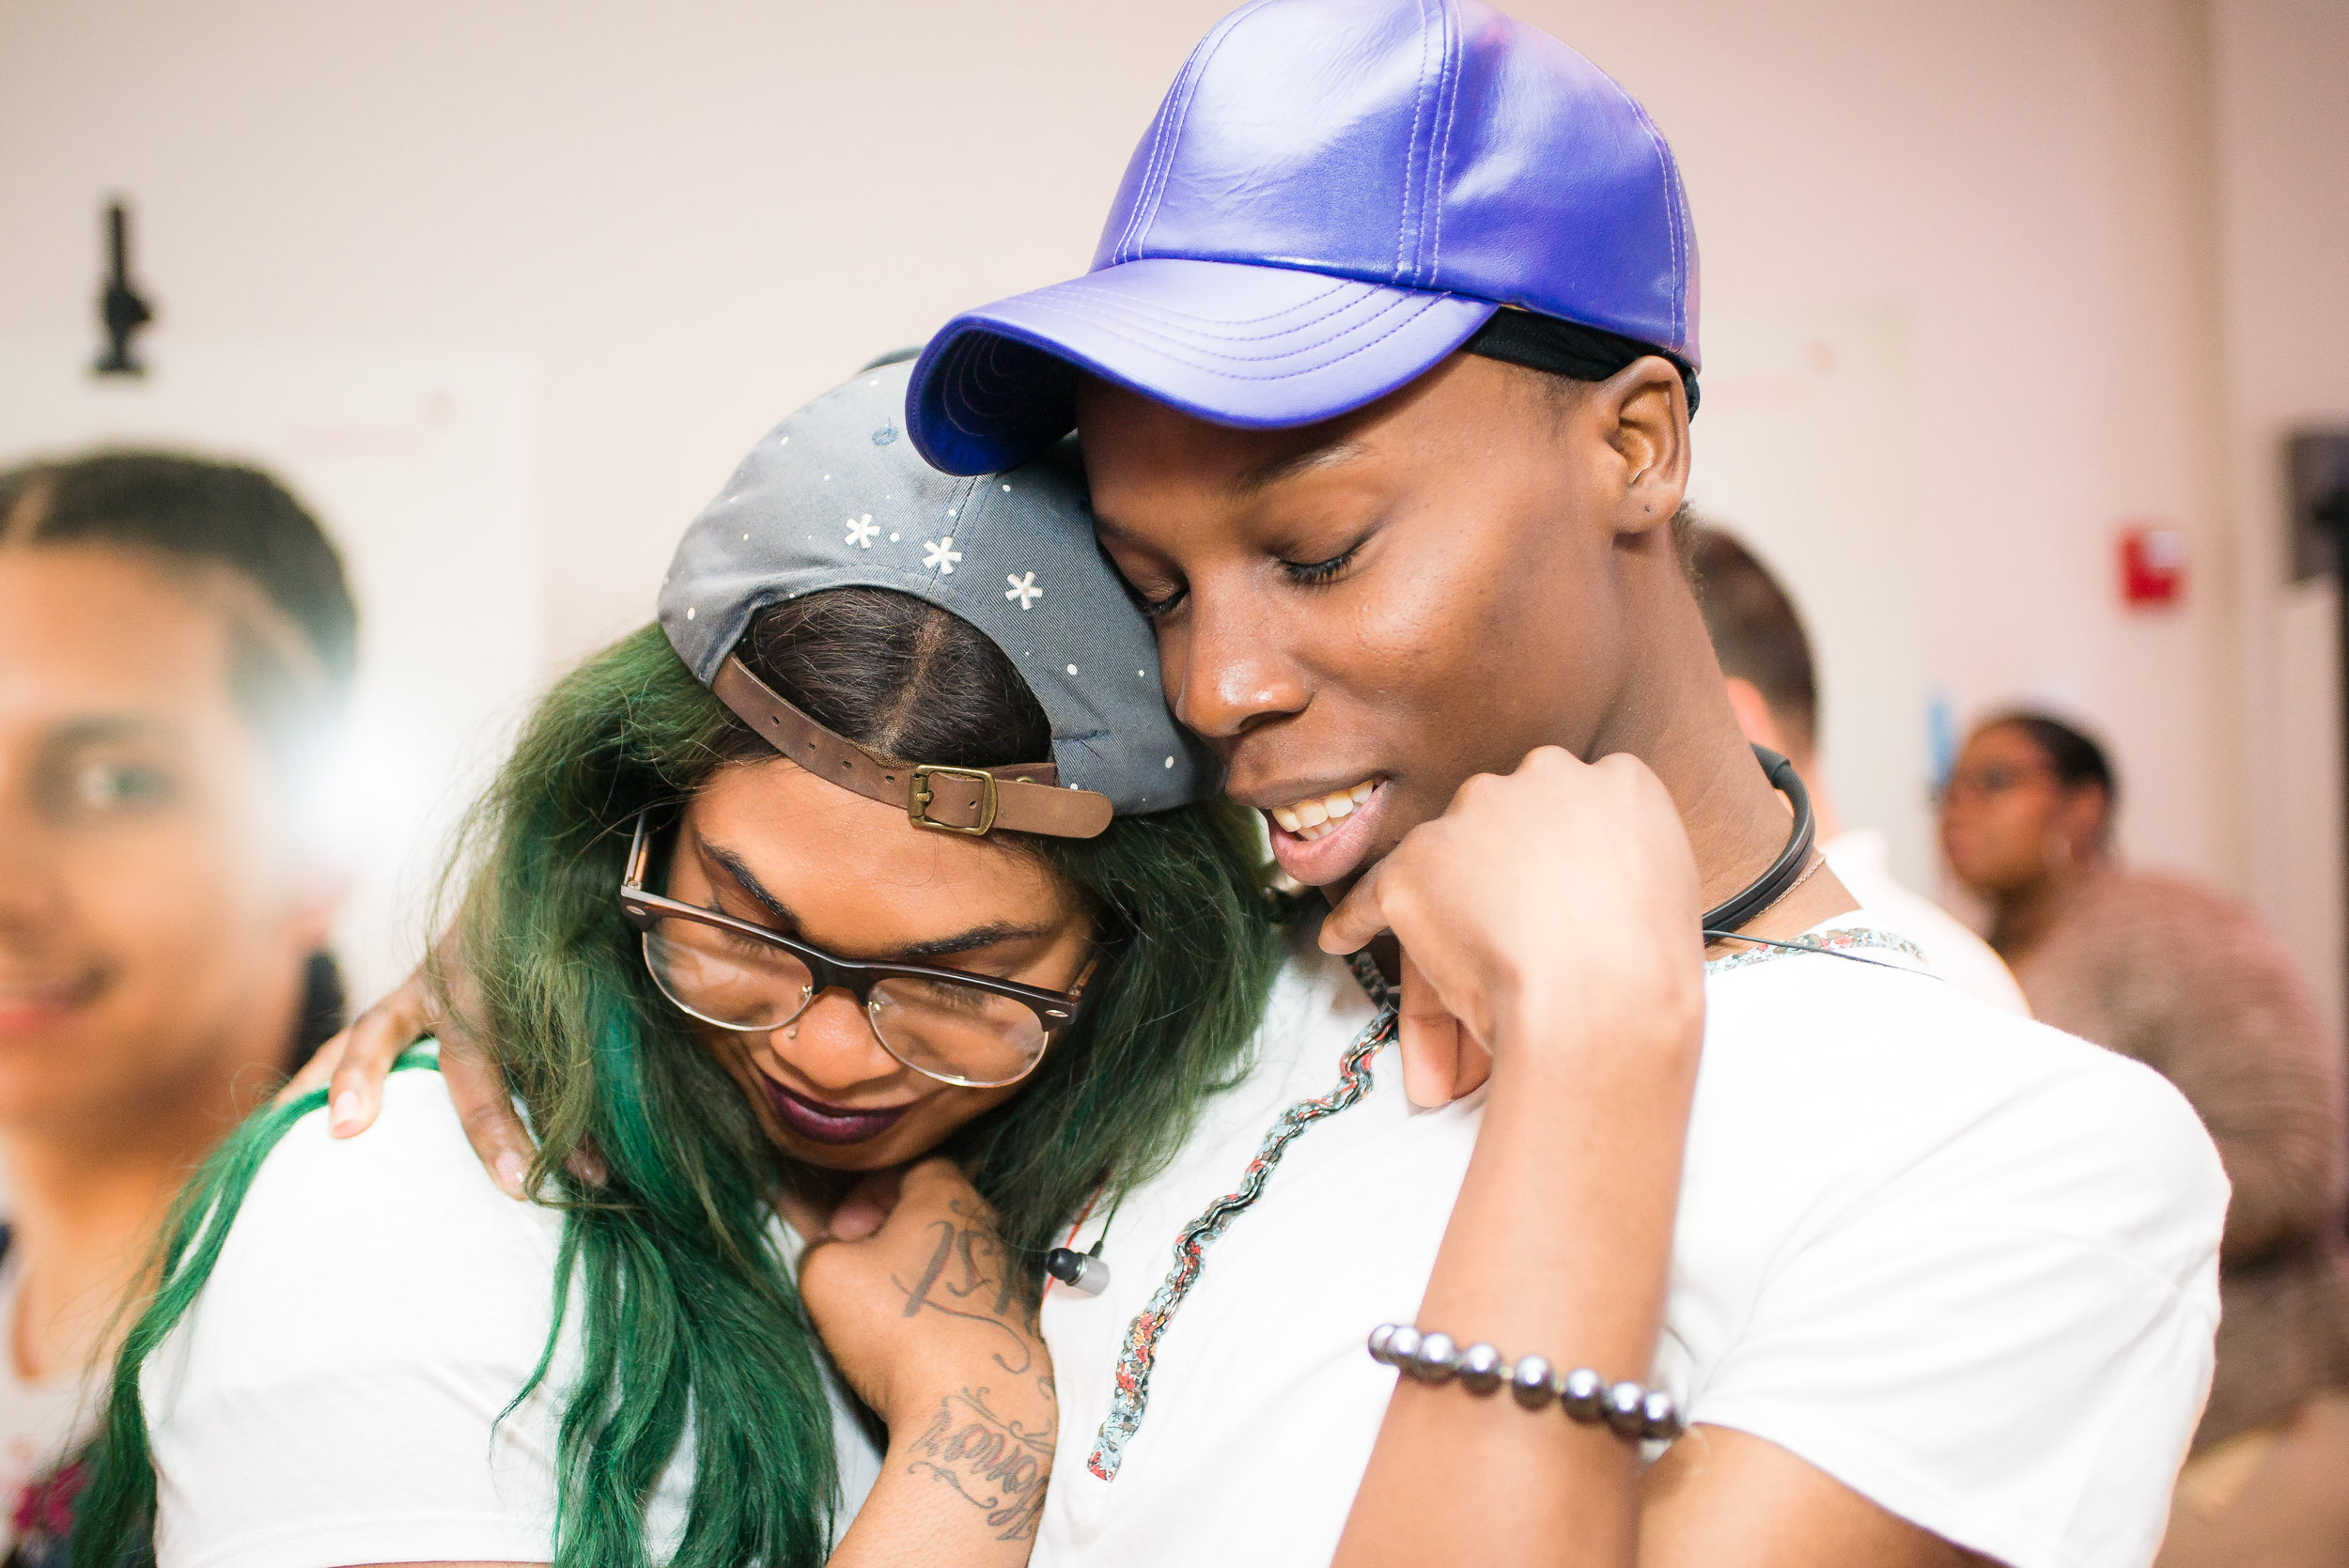 6-1-16 - Heart Gallery NYC event at LGBT center-5419.jpg